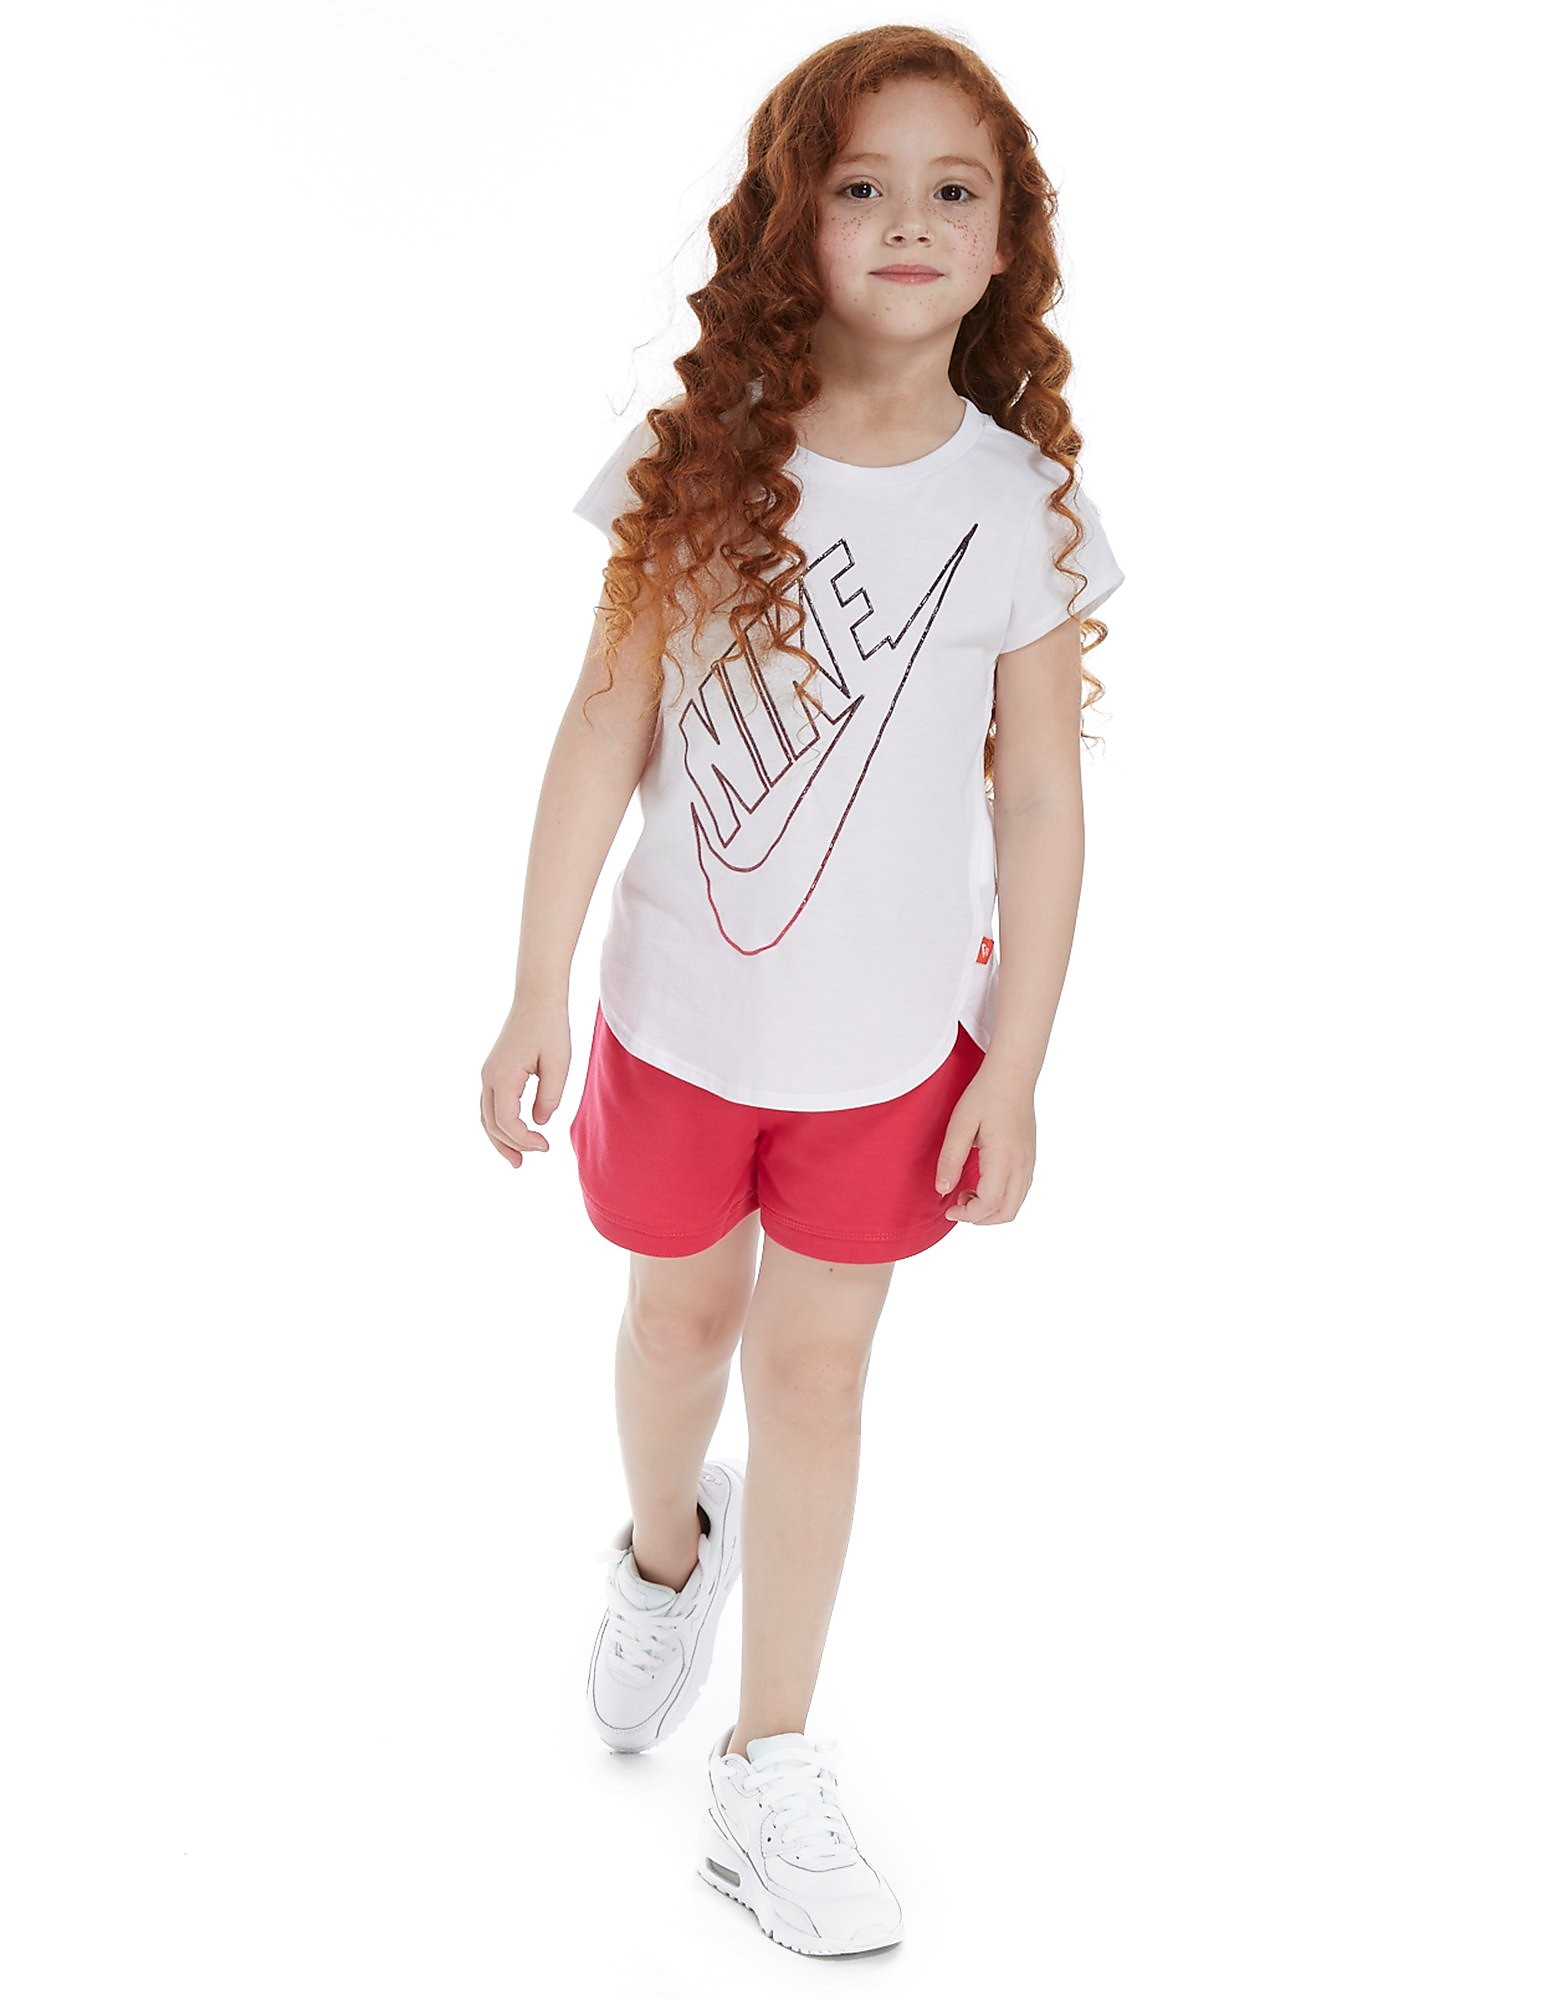 Nike Girls' Gradient Futura T-Shirt Children